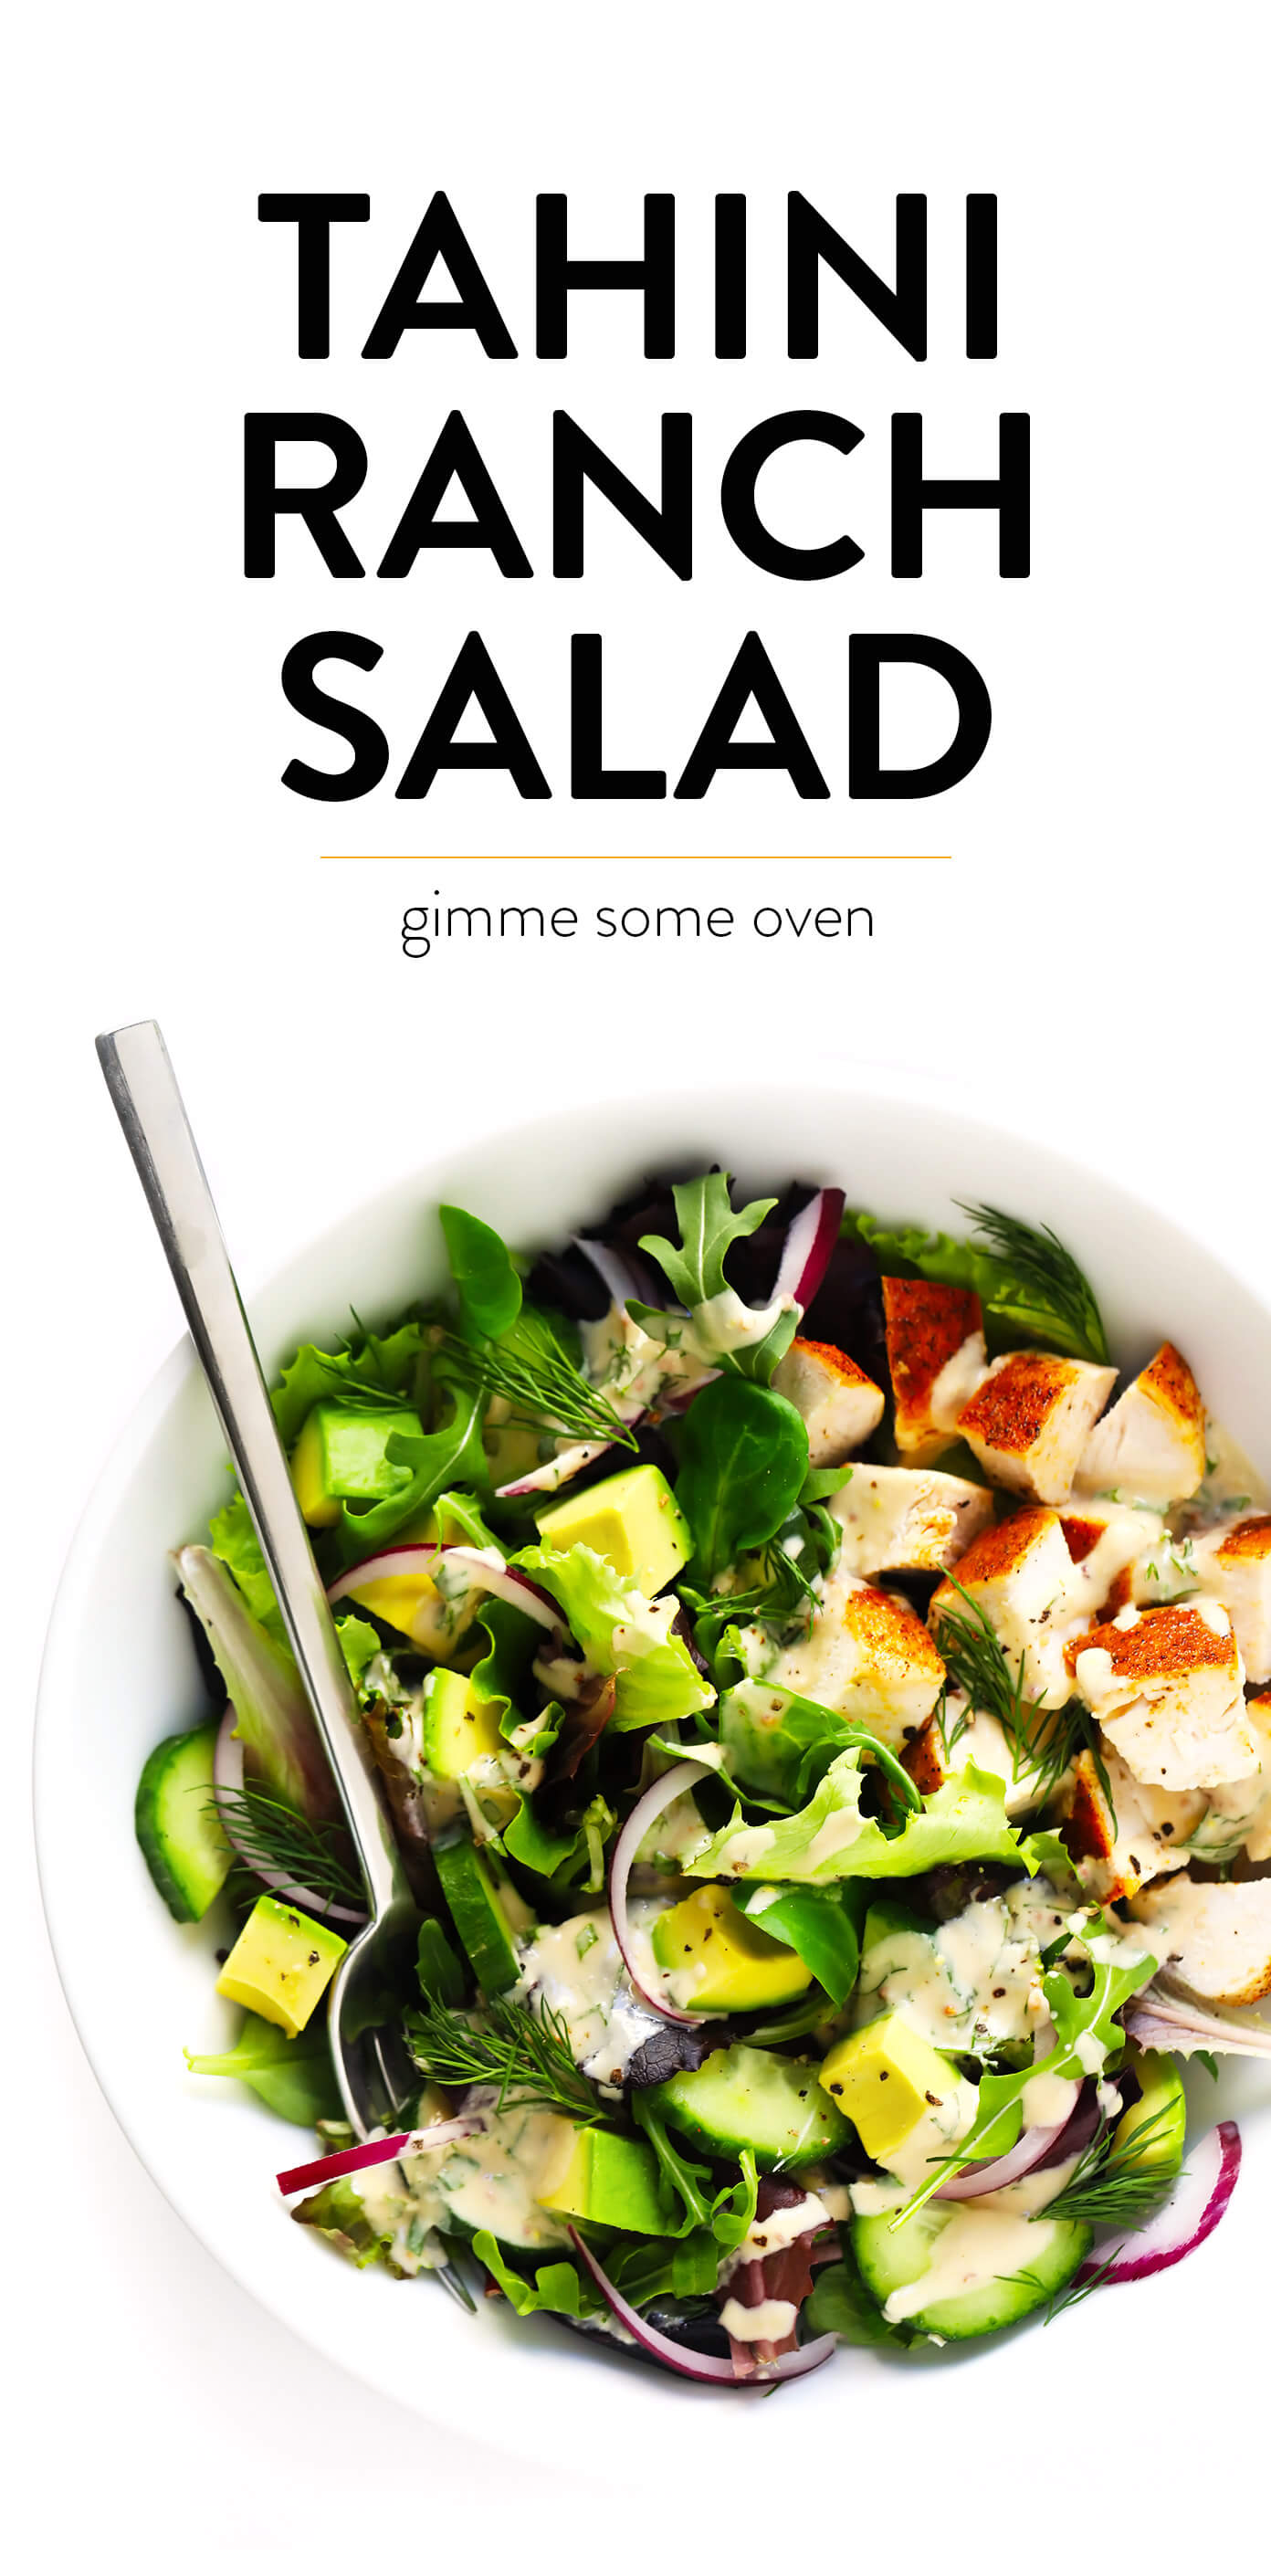 Tahini Ranch Salad Recipe